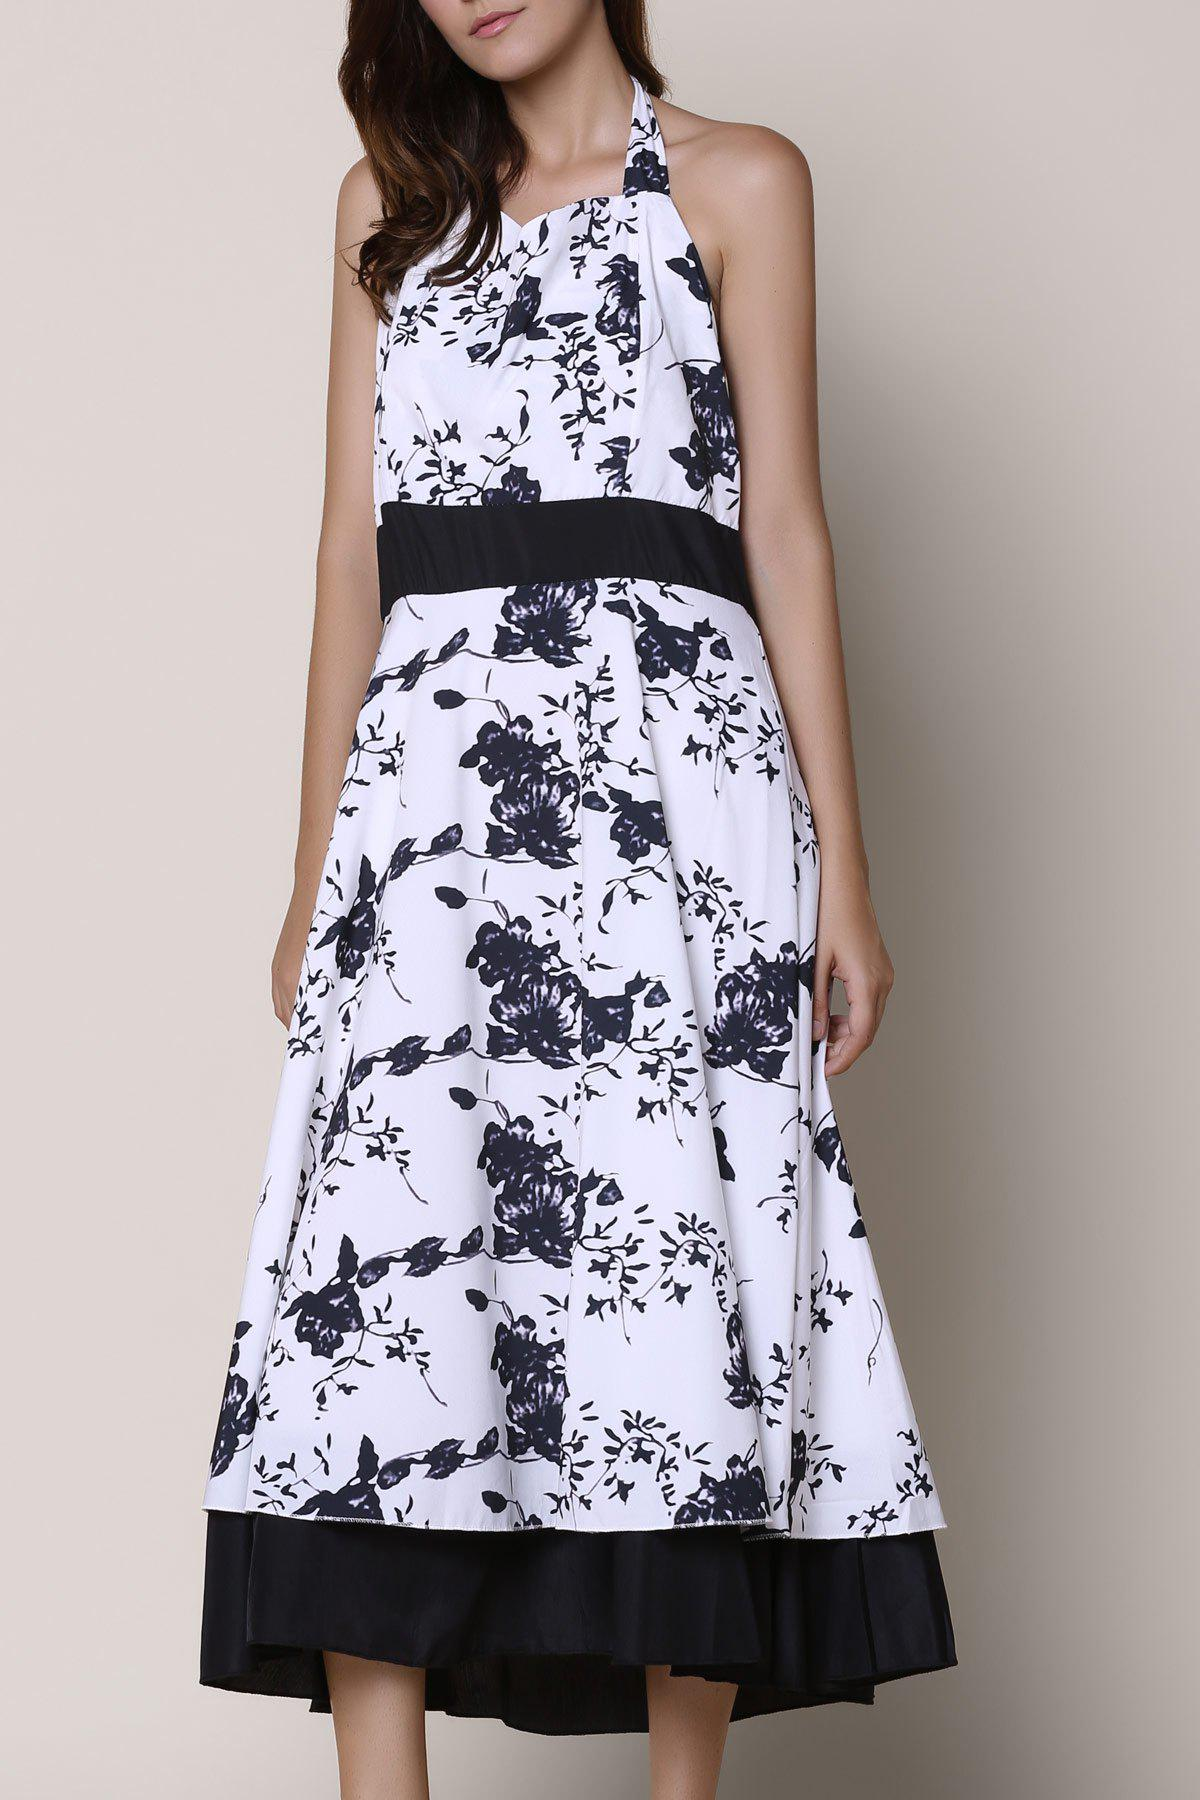 Vintage Floral Printed Halter High Waist Pleated Ball Gown Dress For Women - WHITE/BLACK S